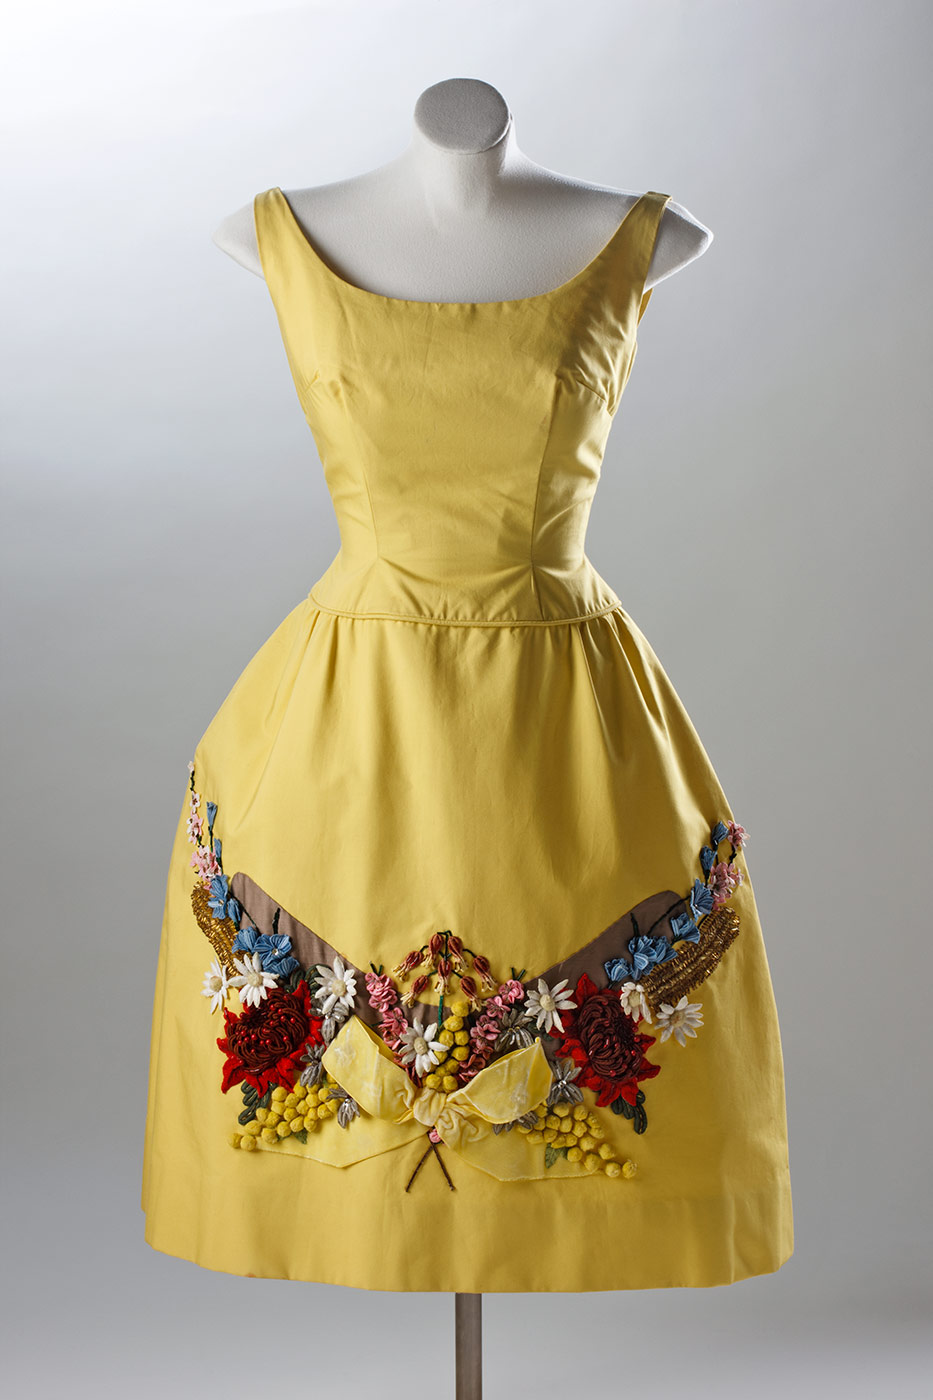 A knee length, golden yellow poplin dress with sleeveless bodice and an A-line, slightly gathered, skirt. The skirt features, on the front lower section, a heavy relief applique of material and beads featuring a richly textured and coloured design of Australian flora including wattle, waratah, banksia, and flannel flowers, over a boomerang shape. - click to view larger image